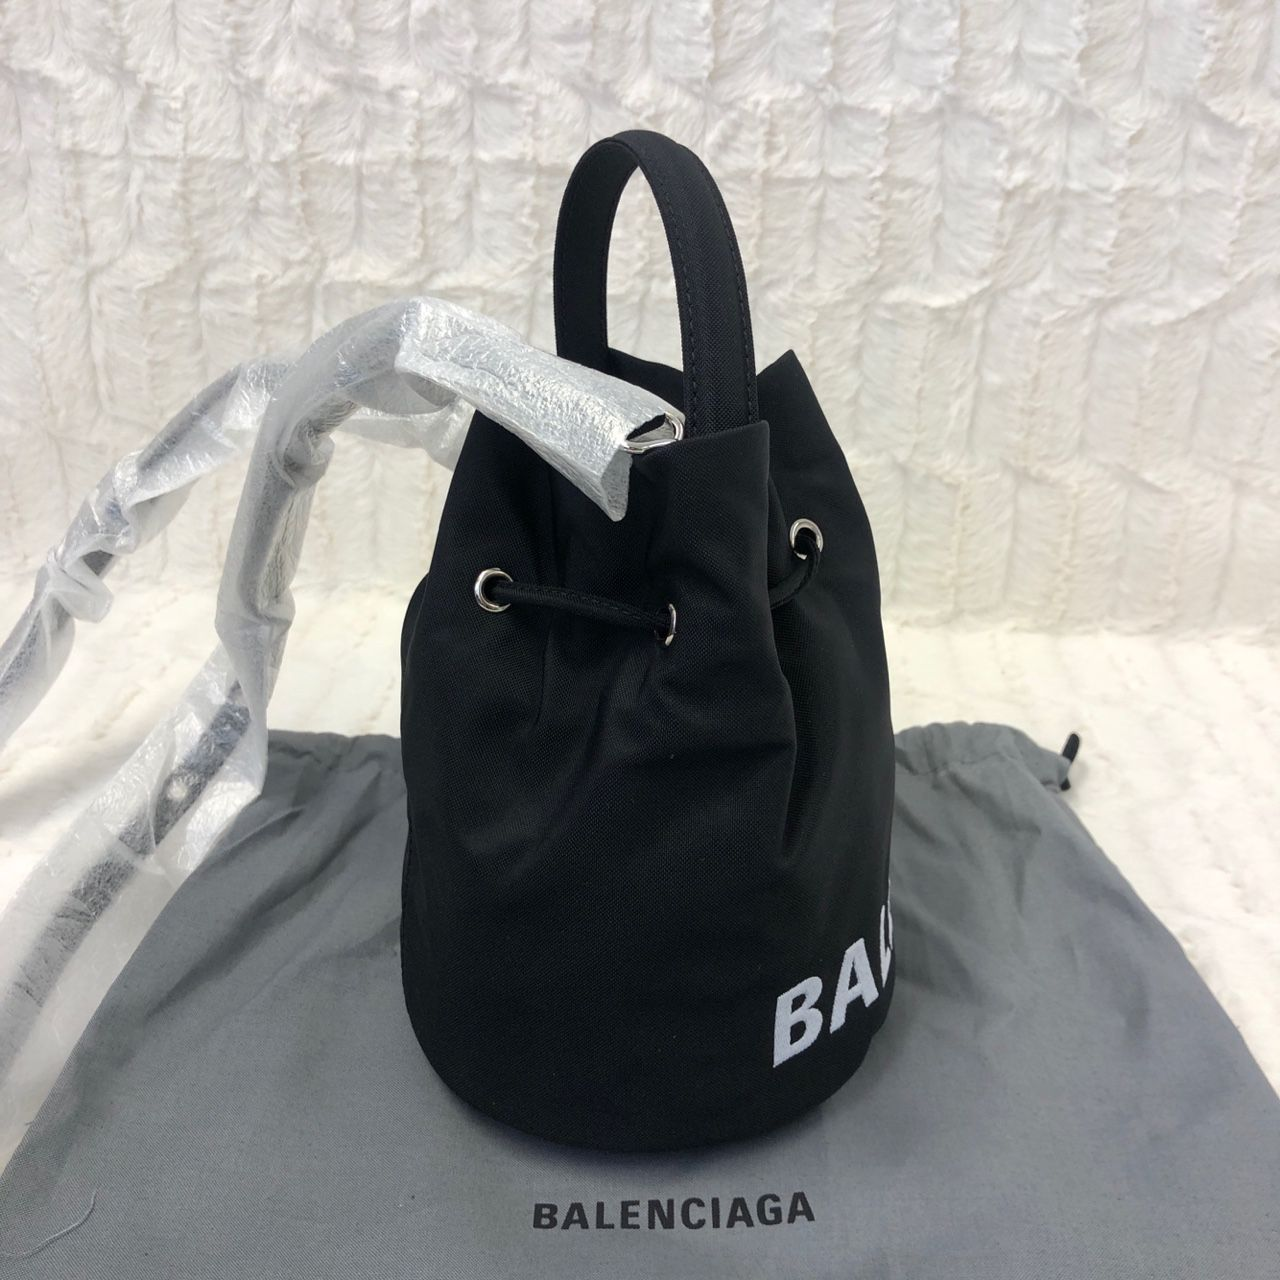 Balenciaga Wheel Drawstring Bag Black A0146115